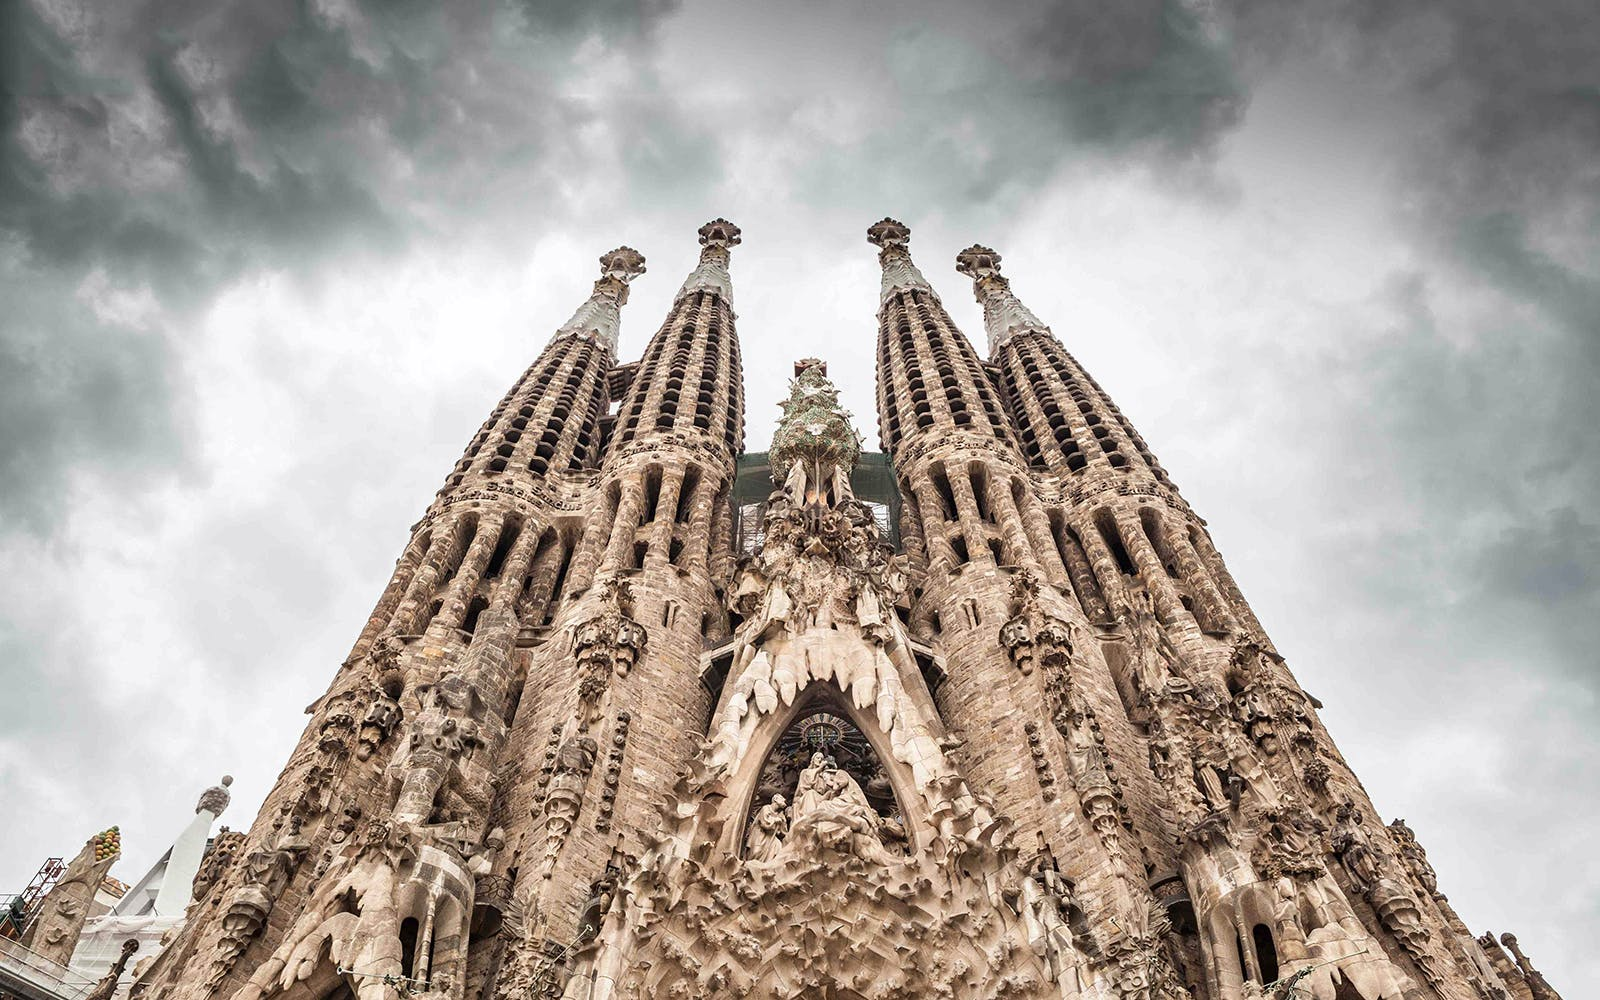 Fast Track Guided Tour of Sagrada Familia